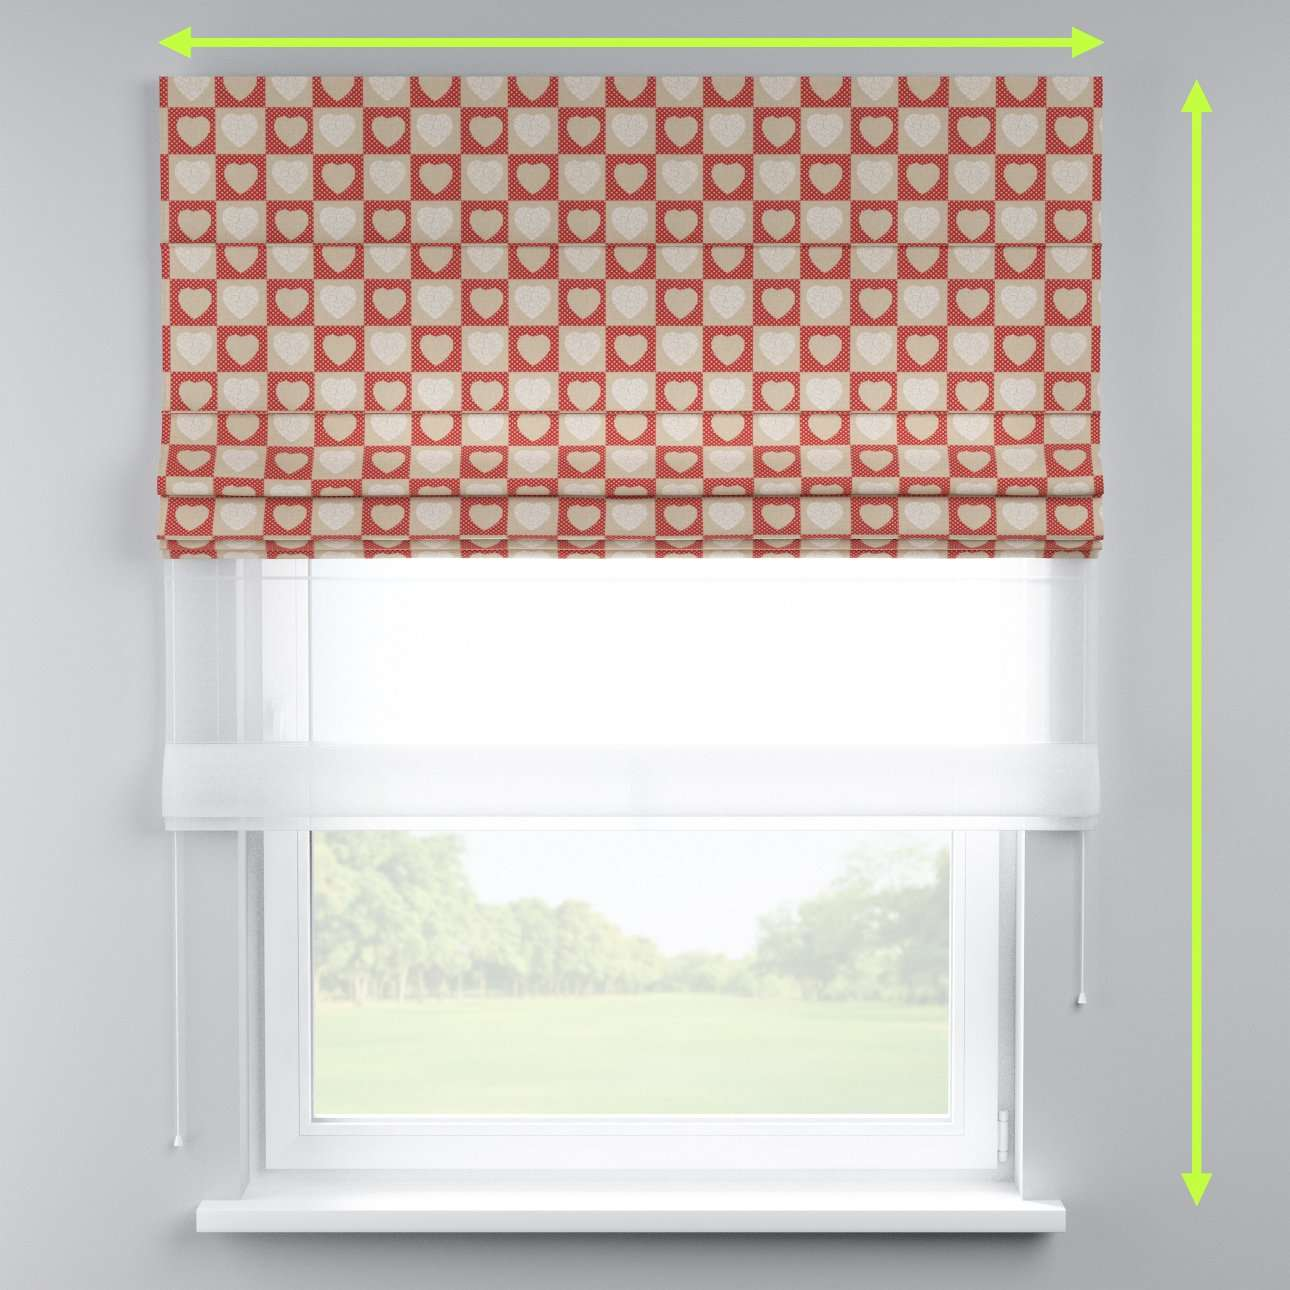 Voile and fabric roman blind (DUO II) in collection Freestyle, fabric: 629-16